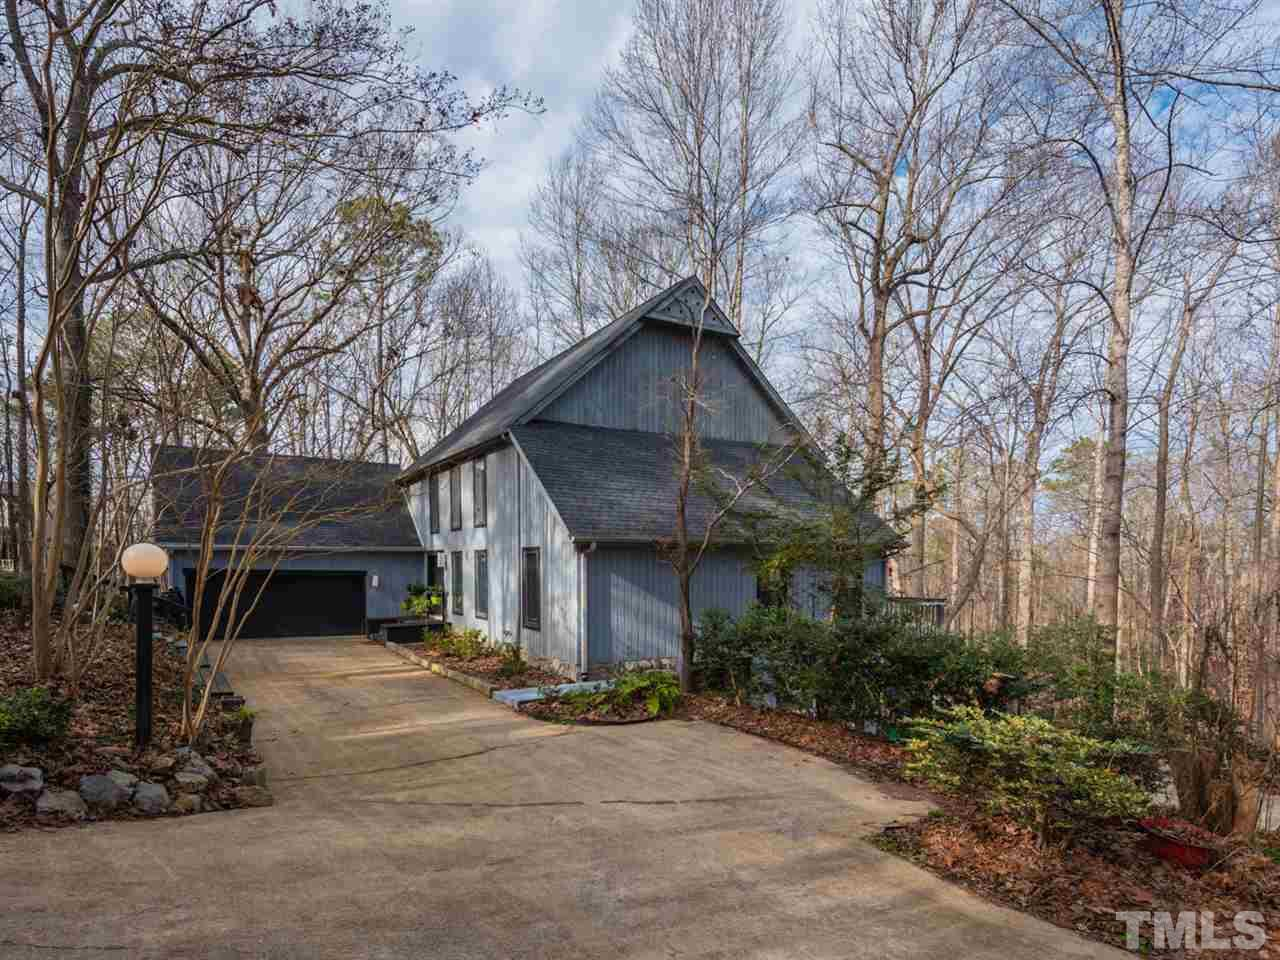 2020 FOX DEN STREET, CLAYTON, NC 27527  Photo